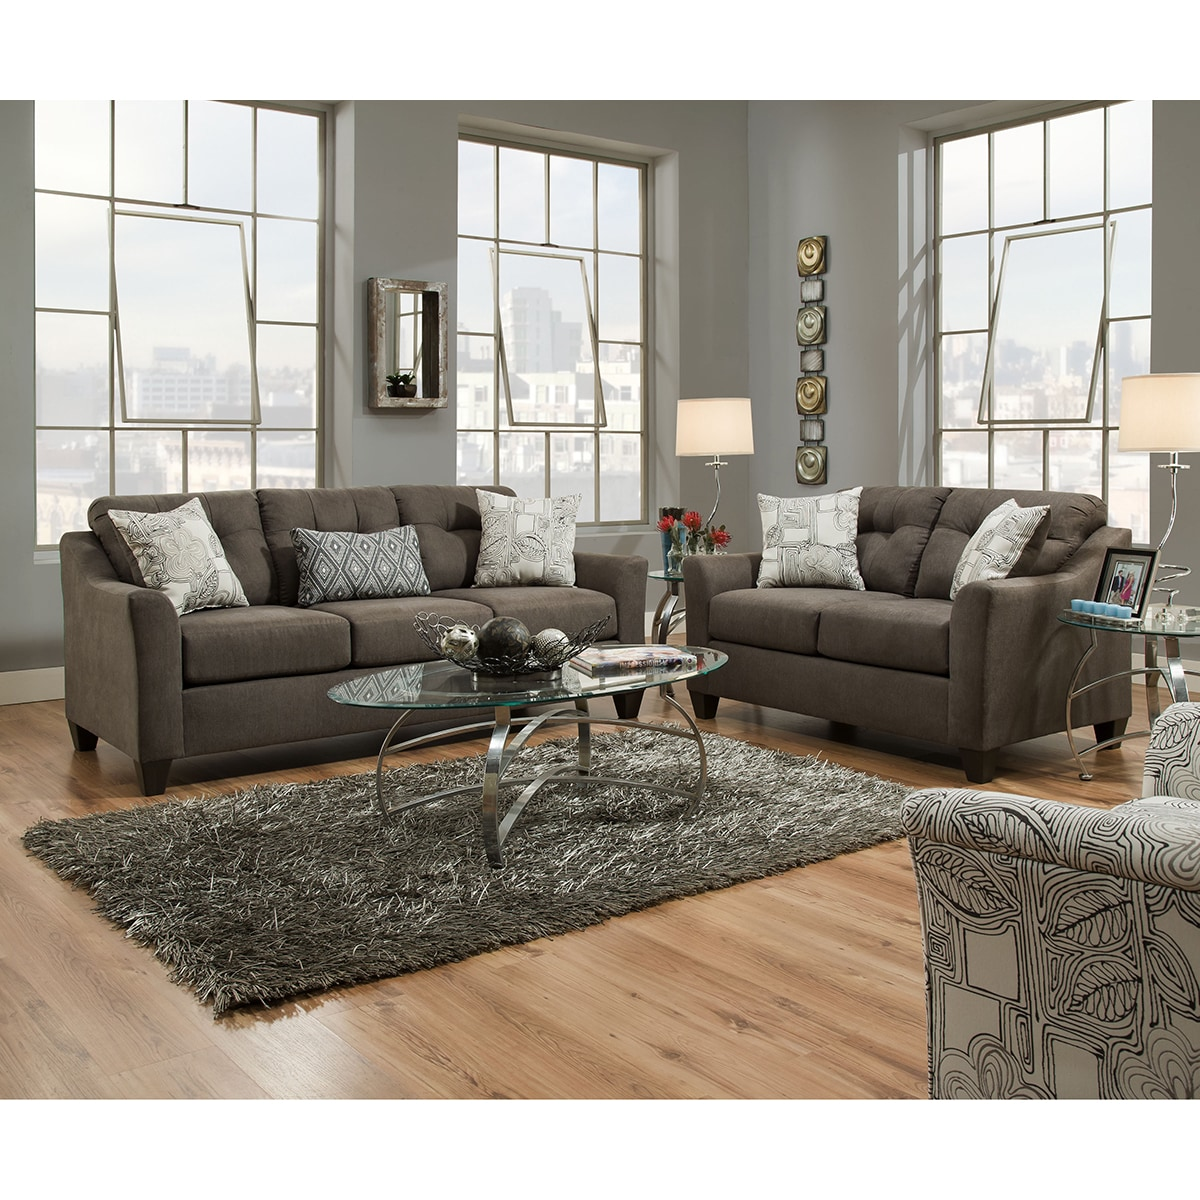 Shop Simmons Upholstery Encino Charcoal Sofa   Free Shipping Today    Overstock.com   15860633